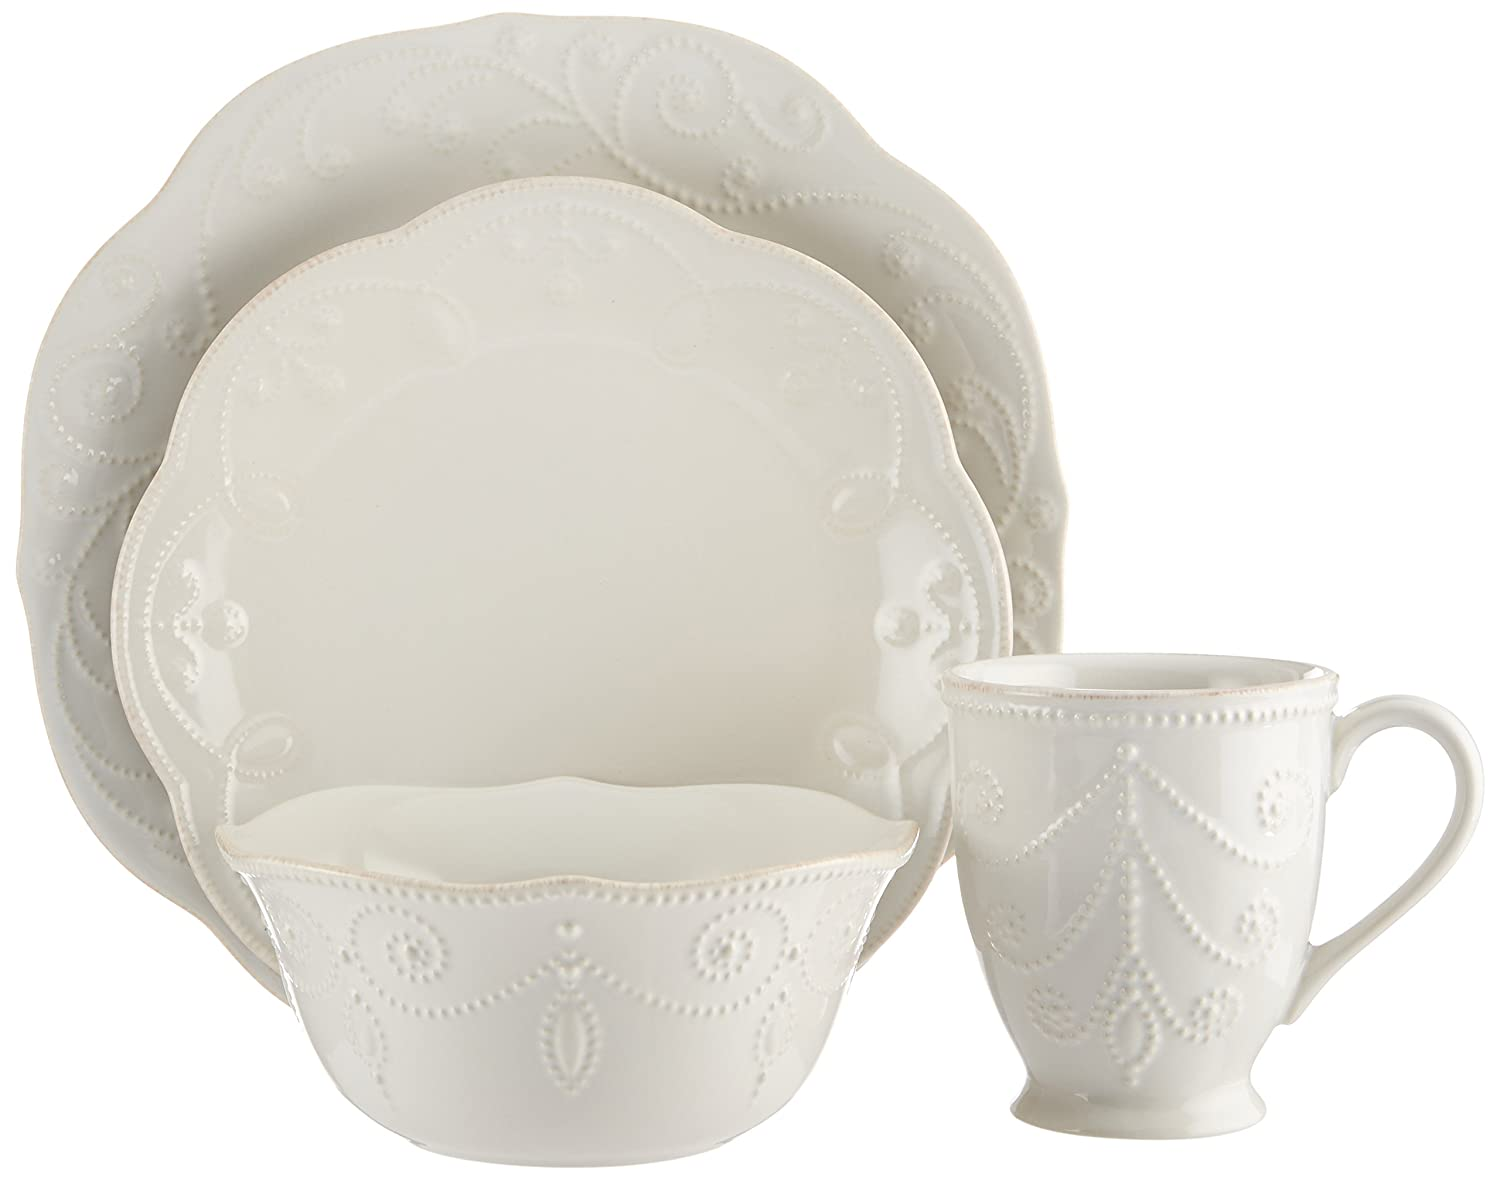 Christmas Tablescape Décor - Lenox French Perle White 4-Pc Place Setting